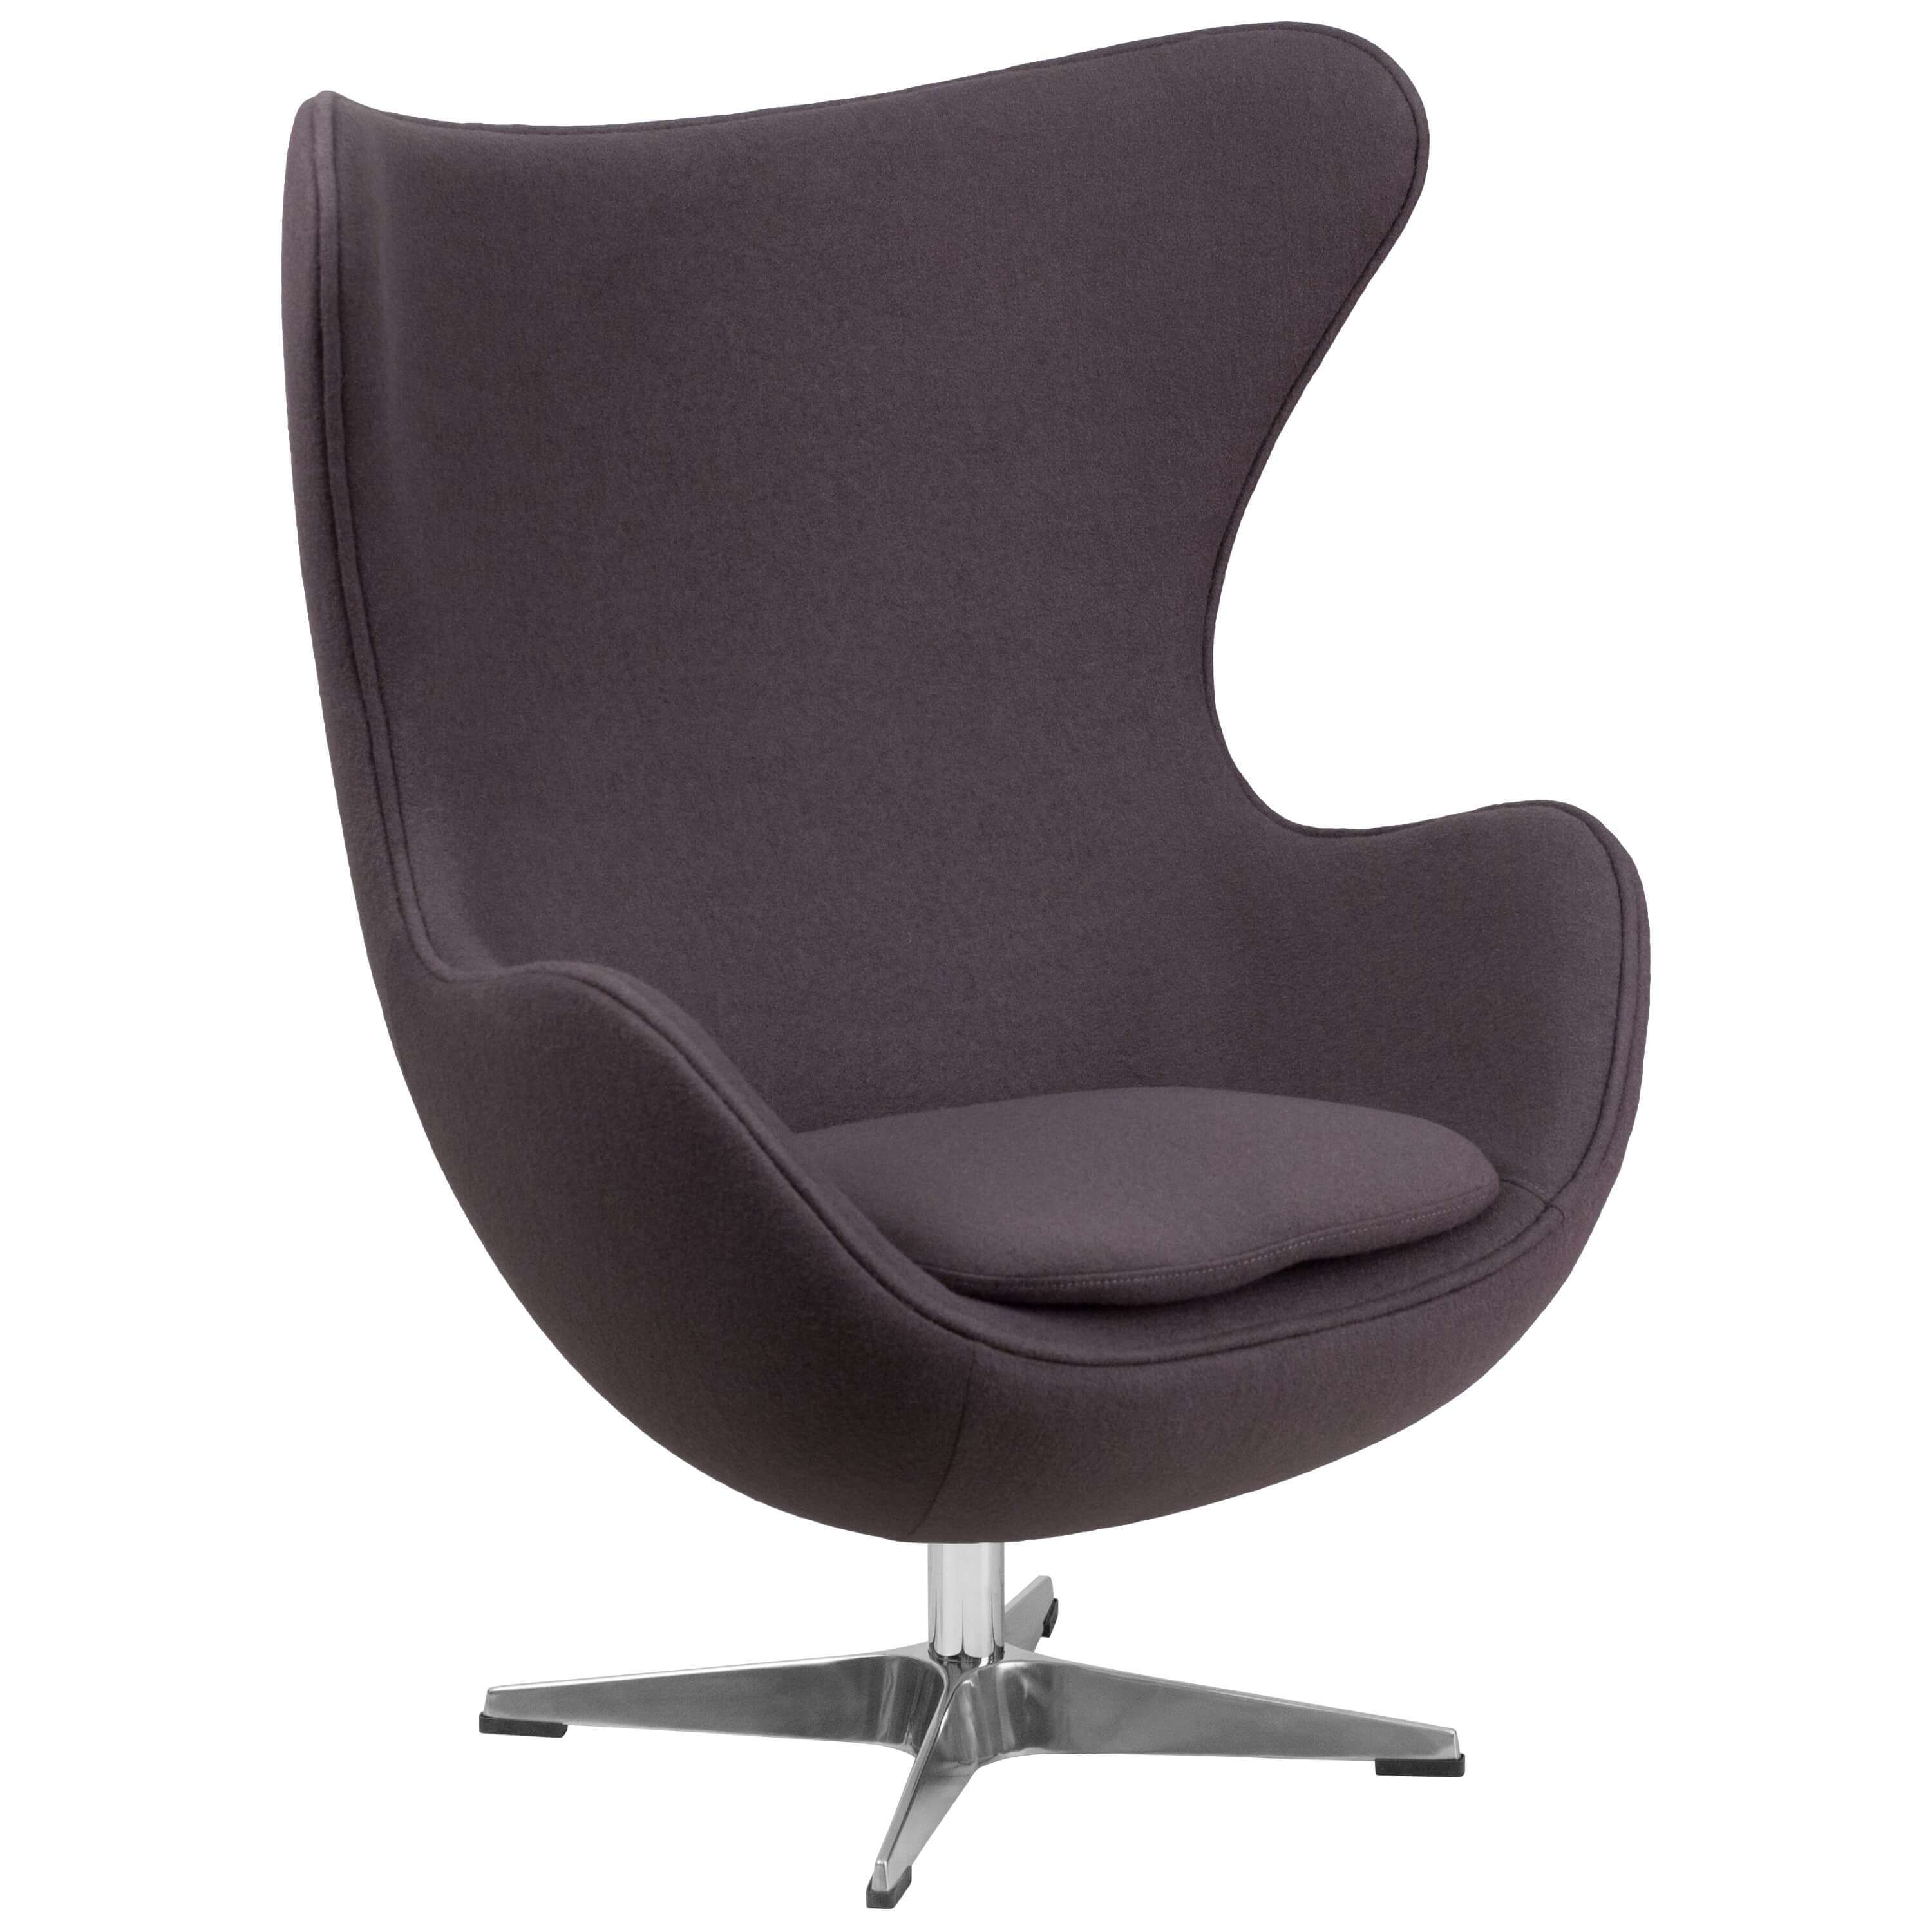 Office lounge chairs CUB ZB 18 GG ALF